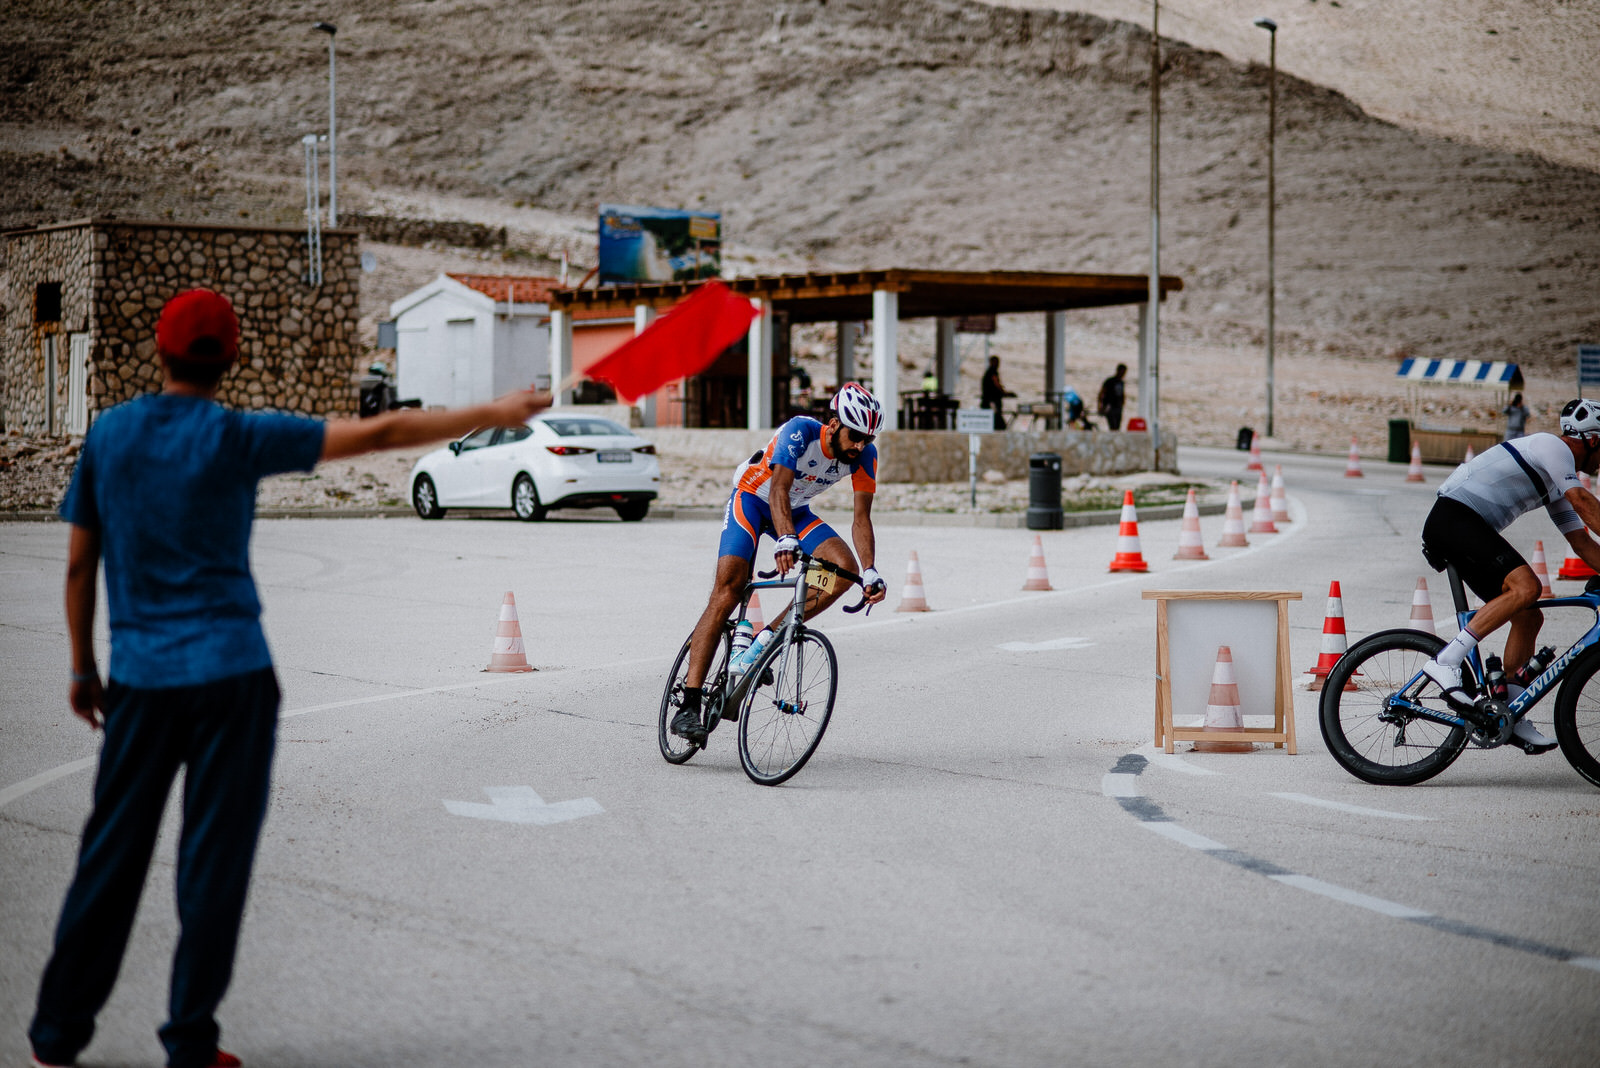 likaclub_Granfondo-Pag-–-Cycling-on-the-Moon_2019-18